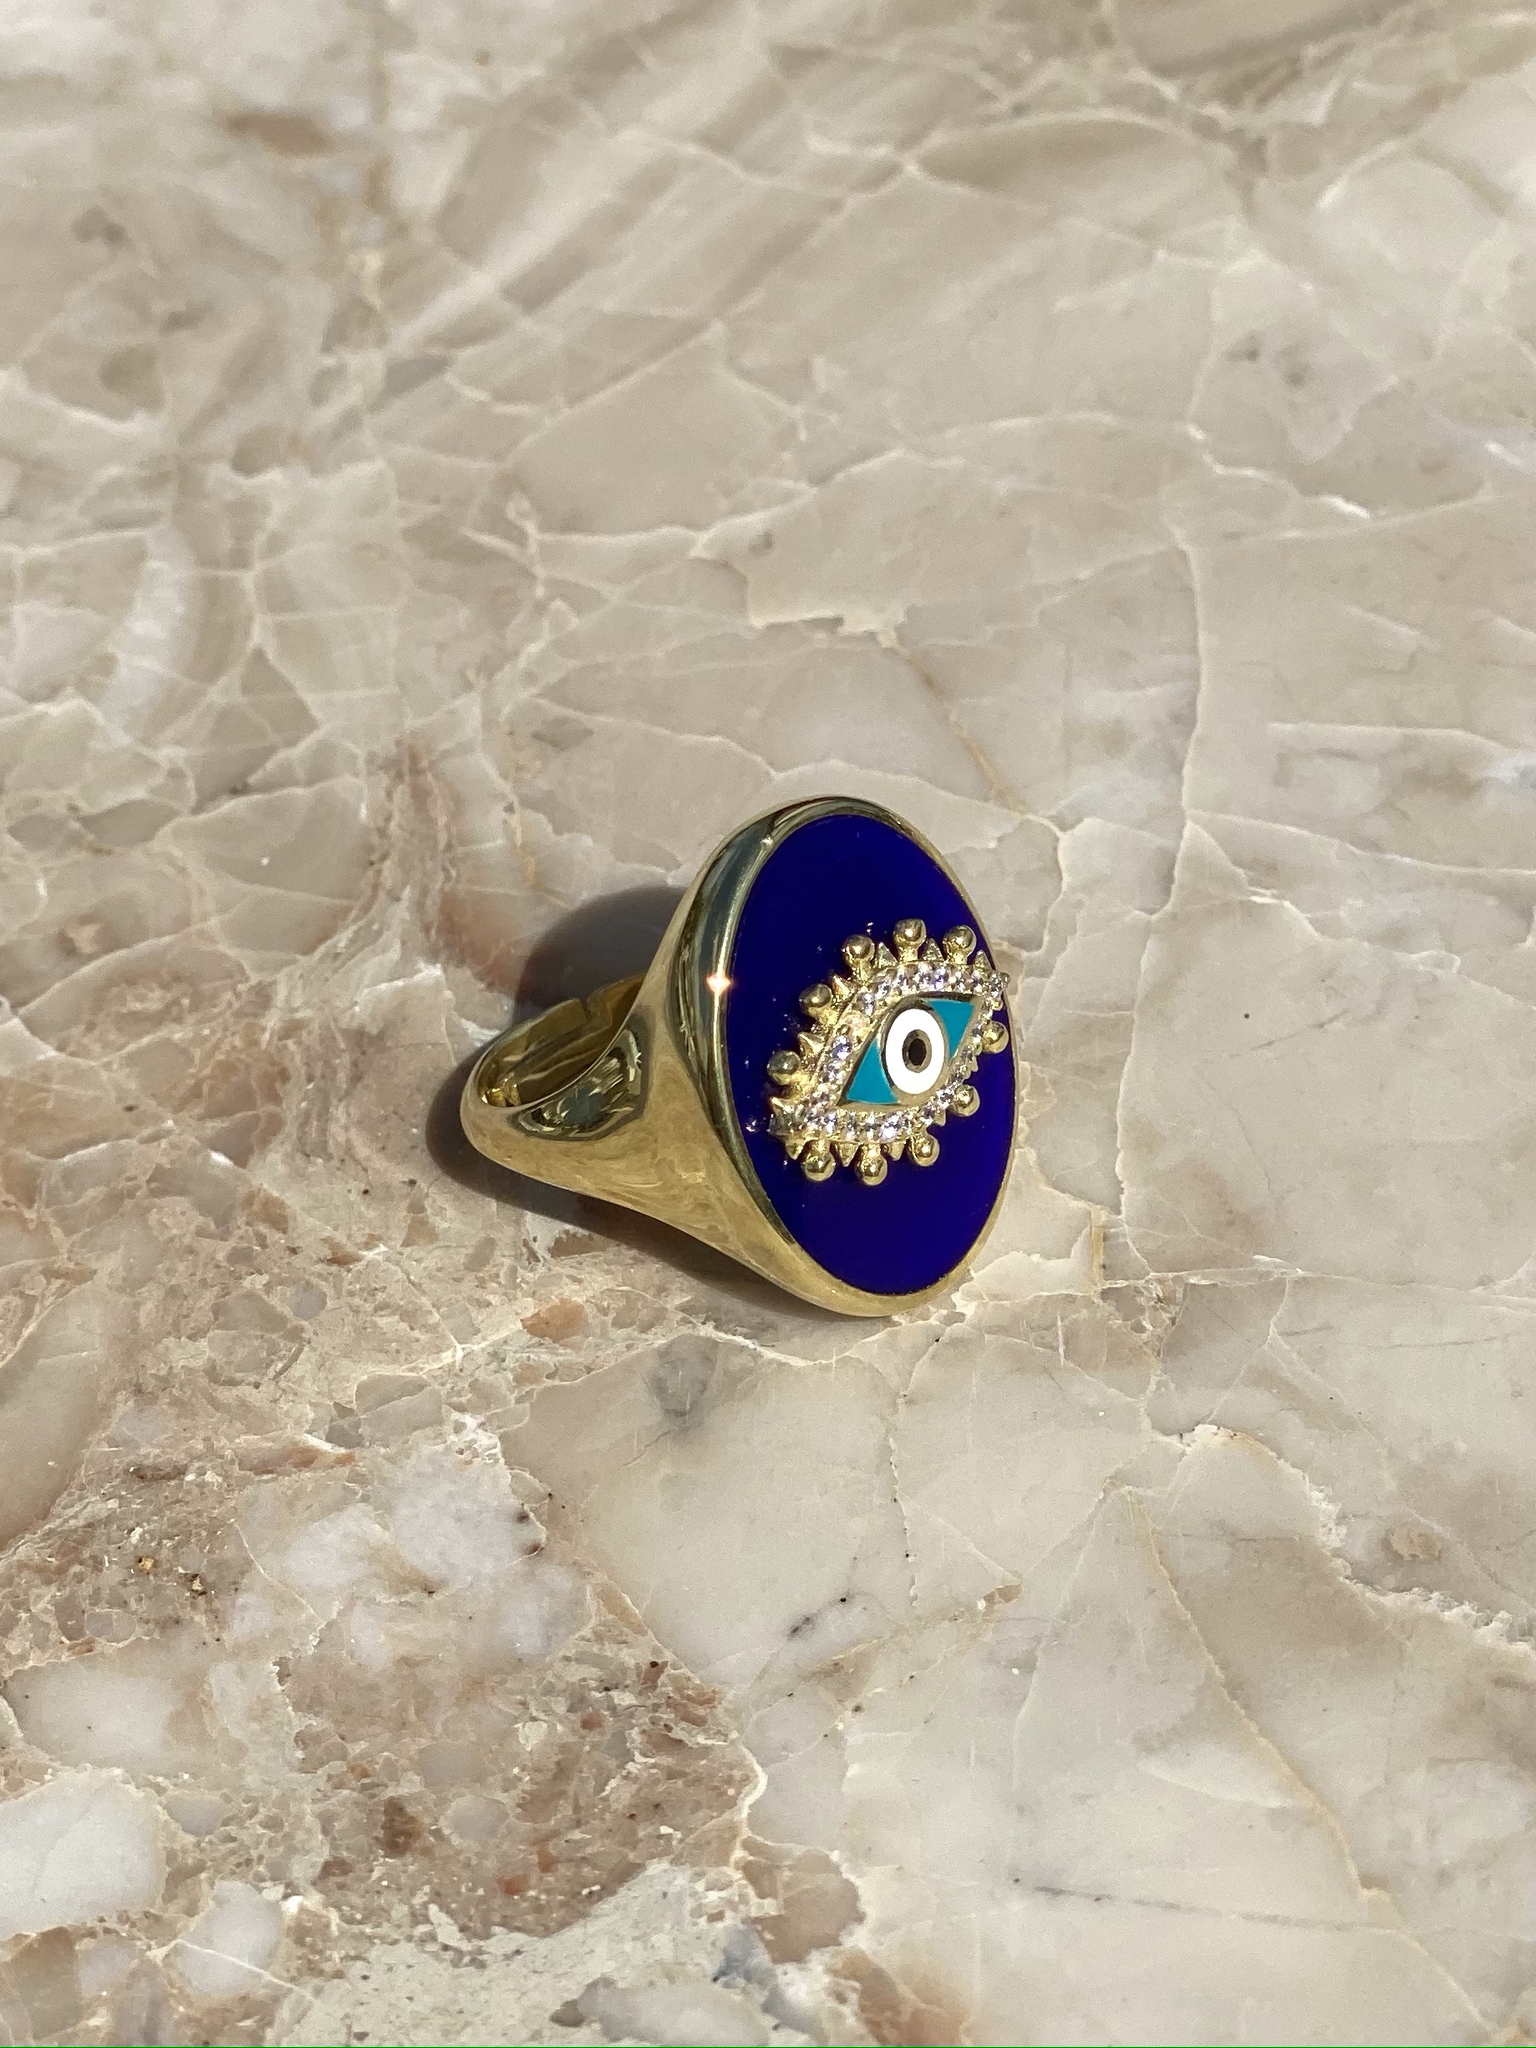 The Eye signet ring in gold plated silver with blue enamel